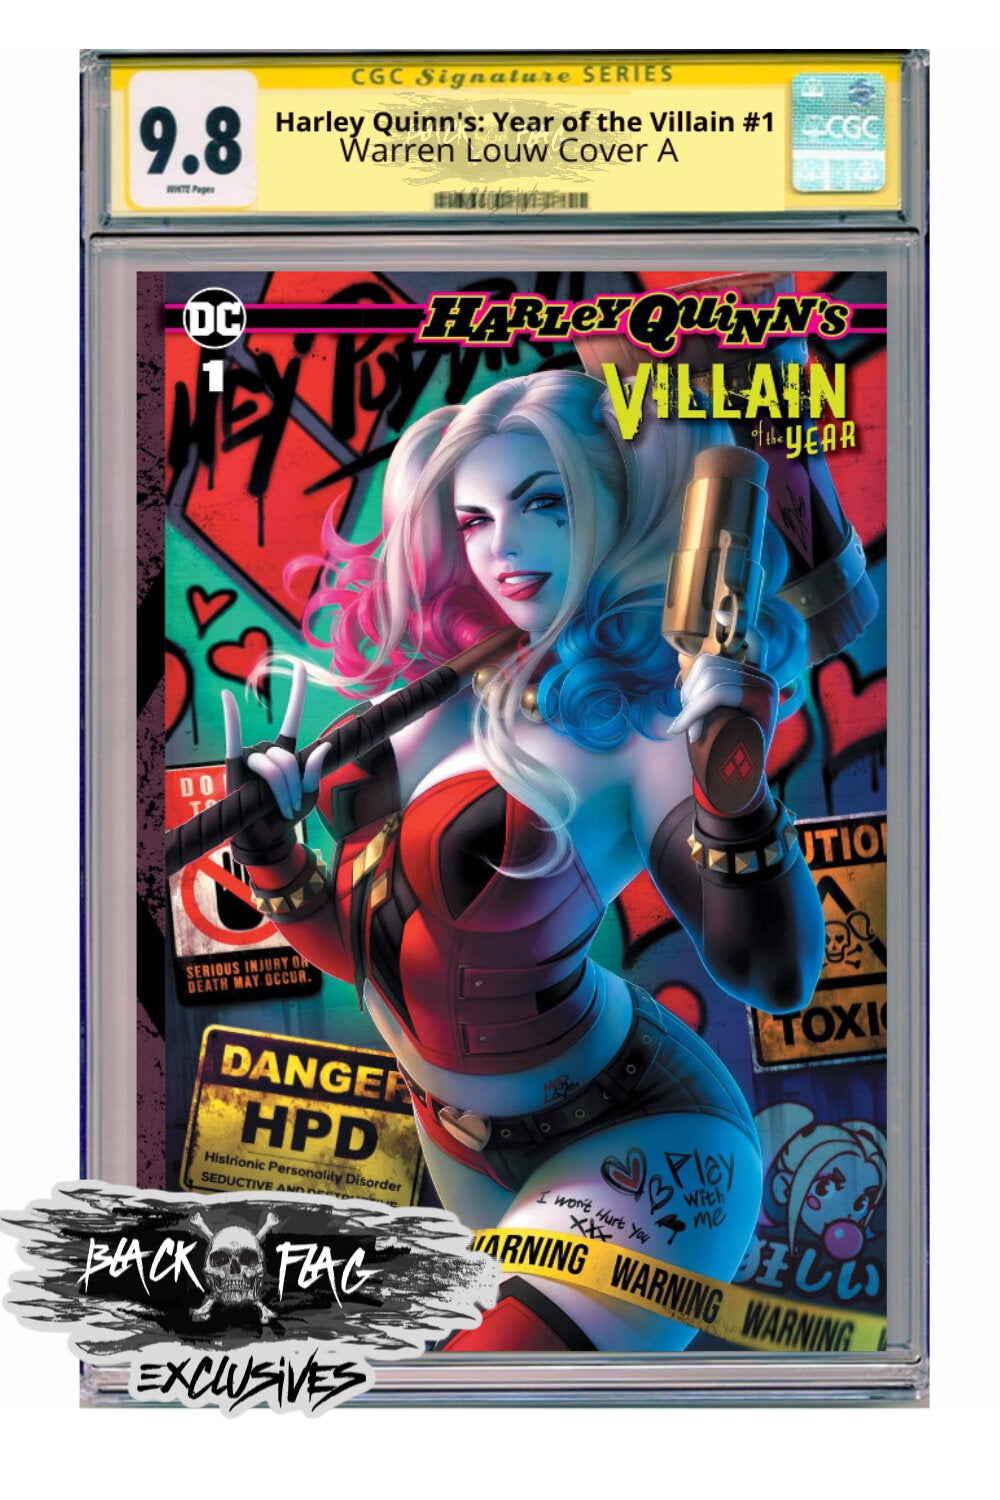 CGC Signature Series  Harley Quinn's: Year of the Villain #1 Louw Cover A